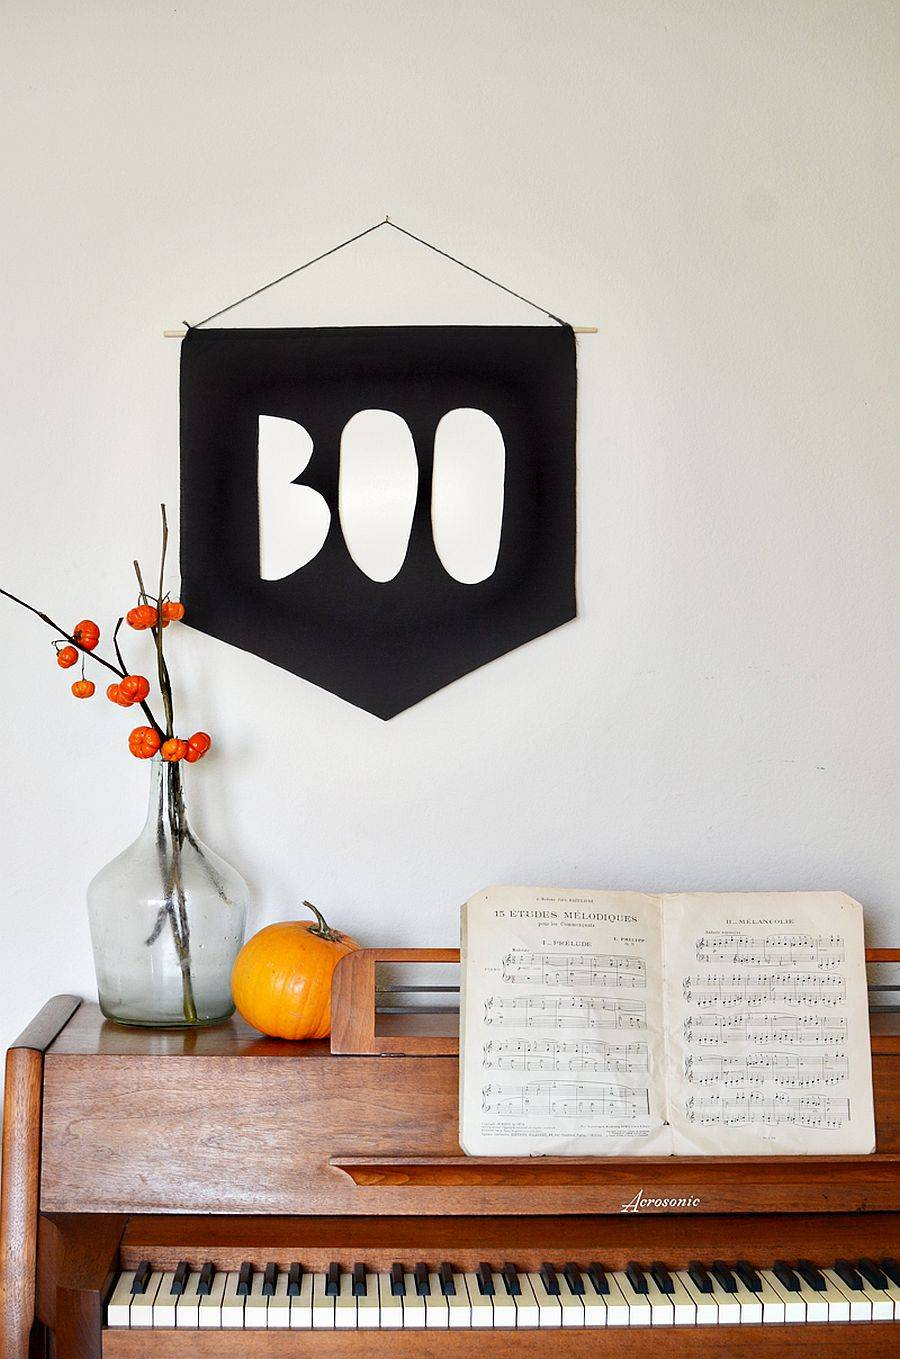 DIY-BOO-banner-is-just-perfect-for-thos-who-are-not-too-happy-about-spooky-Halloween-decorations-99041